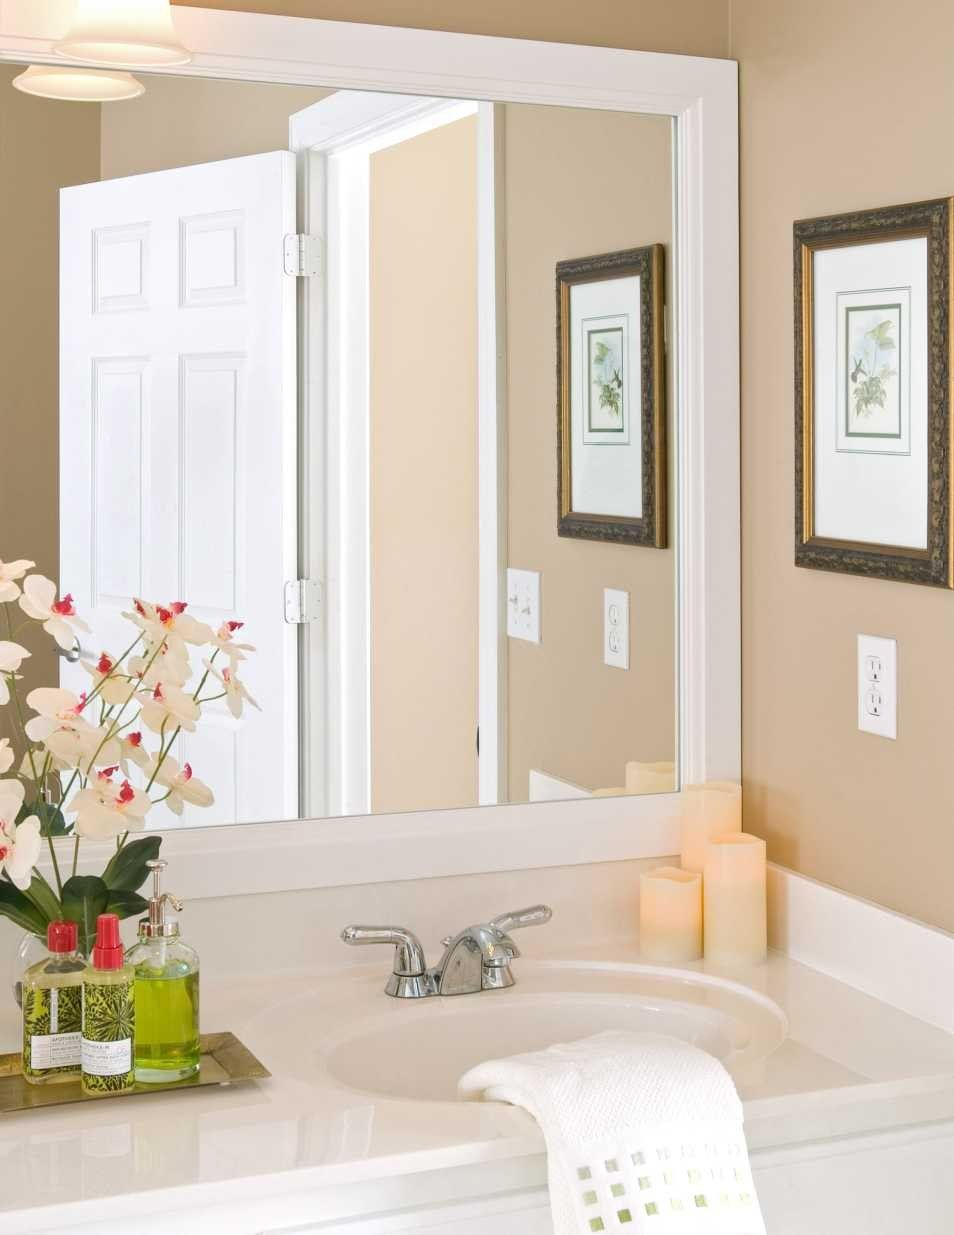 White framed bathroom mirrors mirrors pinterest frame bathroom mirrors bathroom mirrors Frames for bathroom wall mirrors